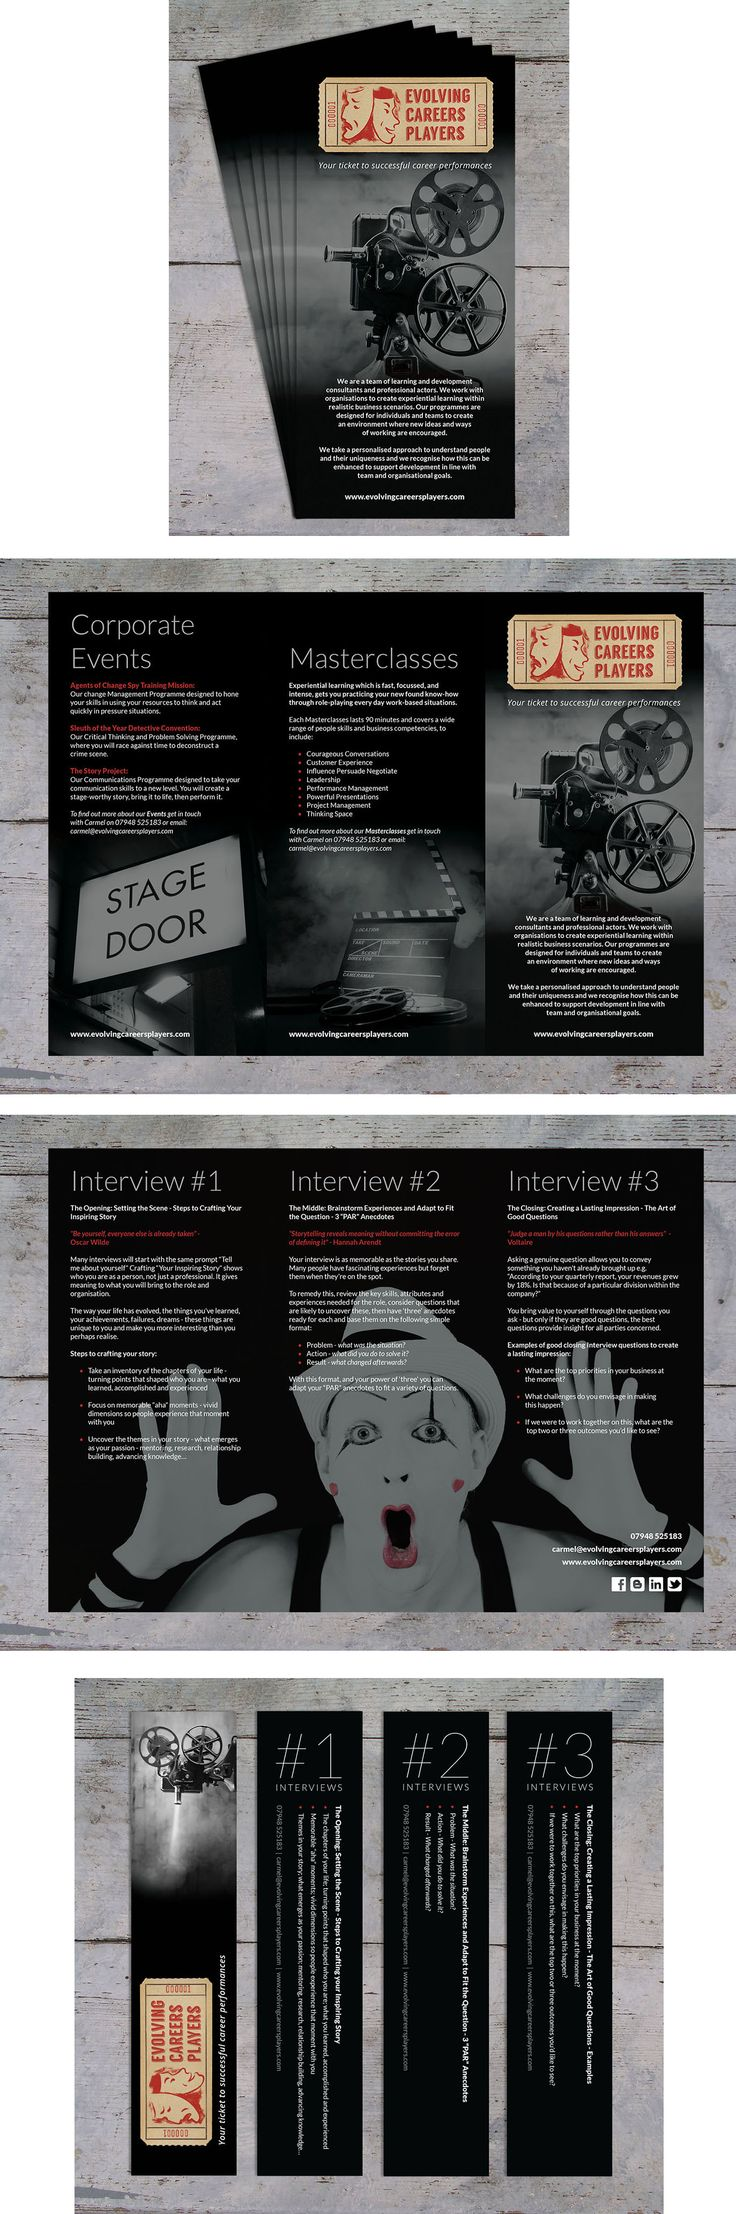 Evolving Careers Players - A4 folded to DL leaflet and bookmarks.